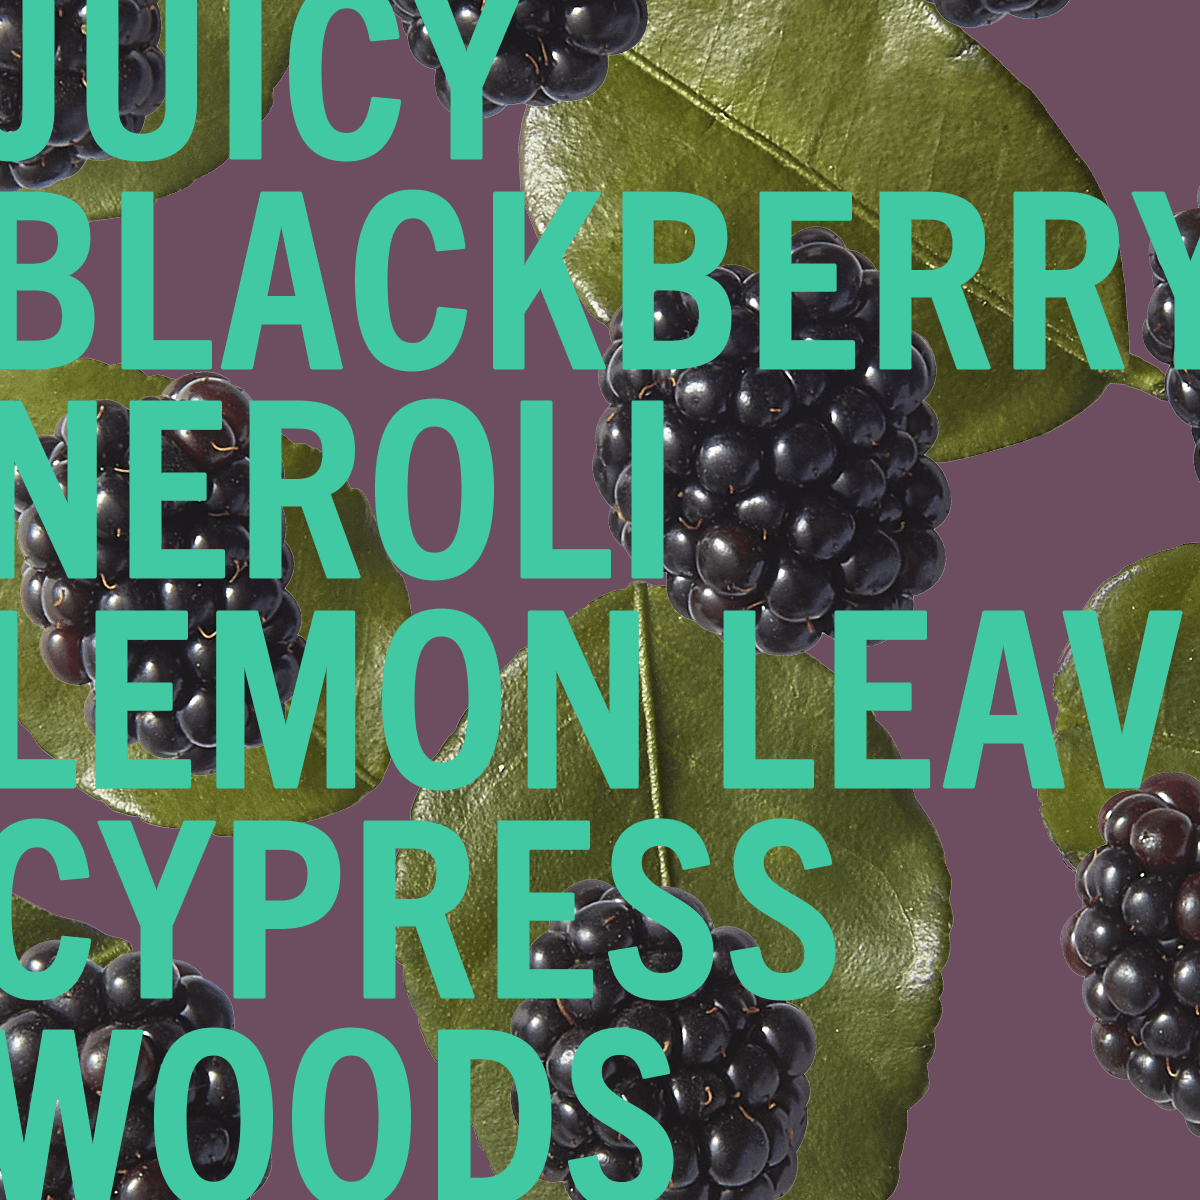 Blackberry Woods Fragrance 100ml | Glossy berry juice with punk-sharp citrus. | Clean All Gender Fragrance | Shay & Blue